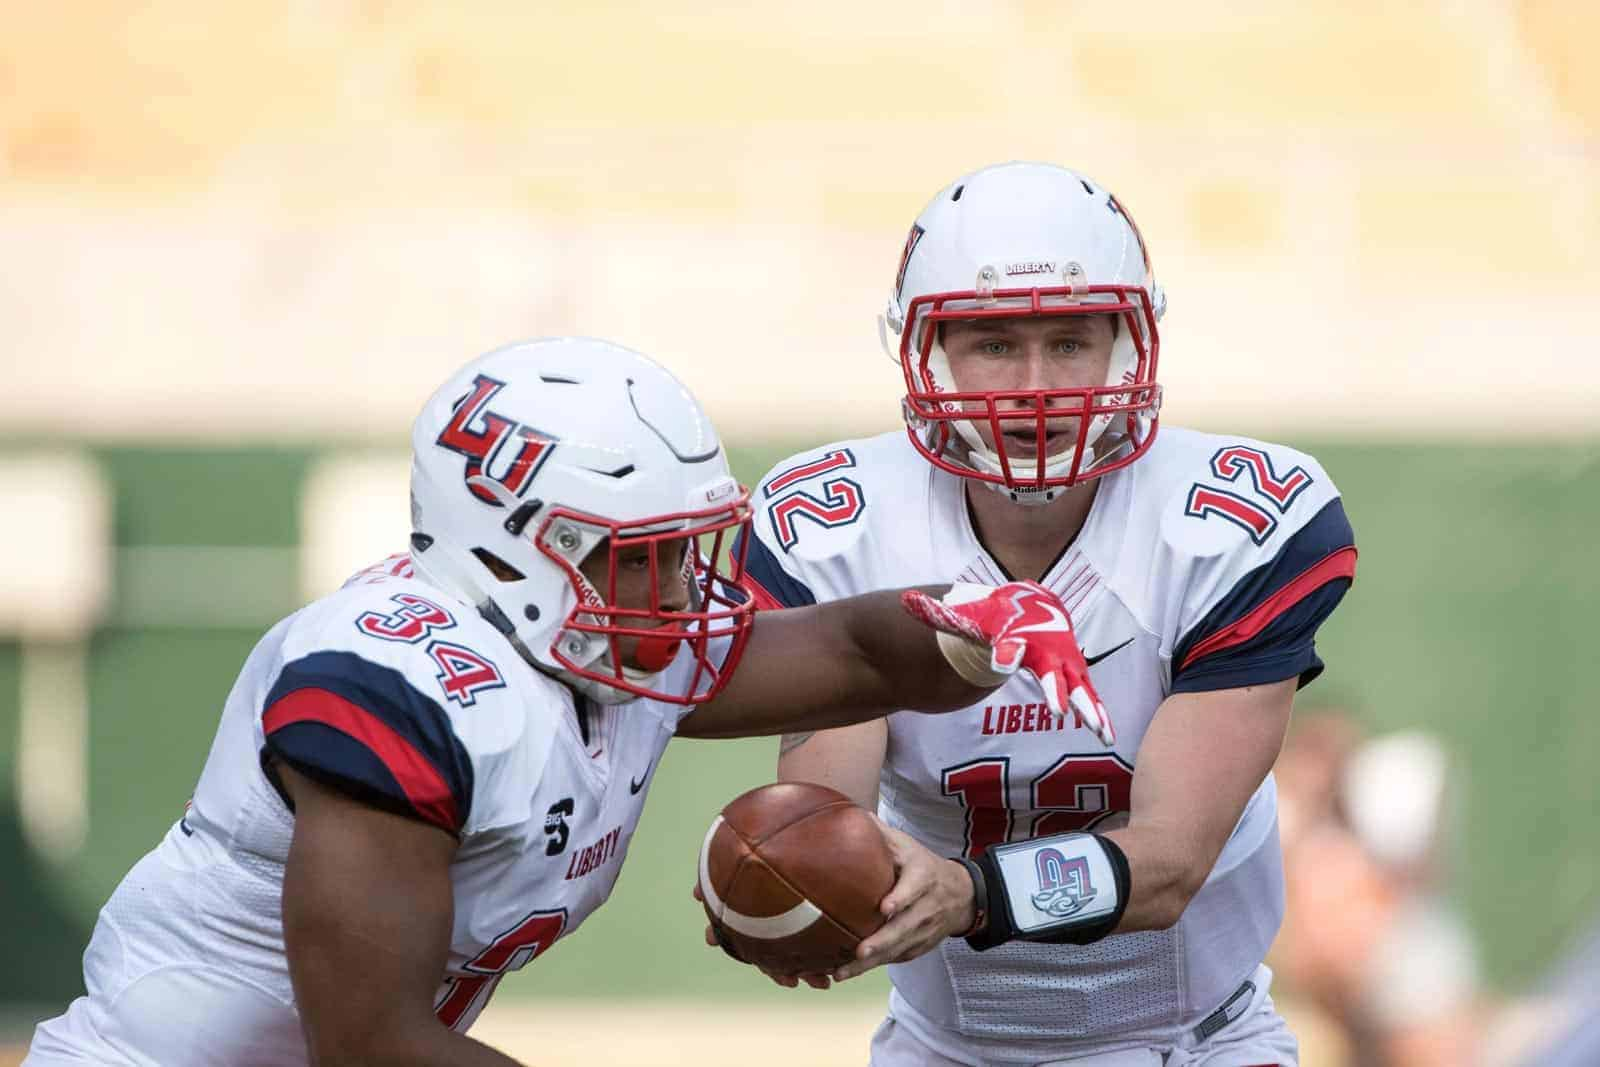 College Football Schedule: Liberty